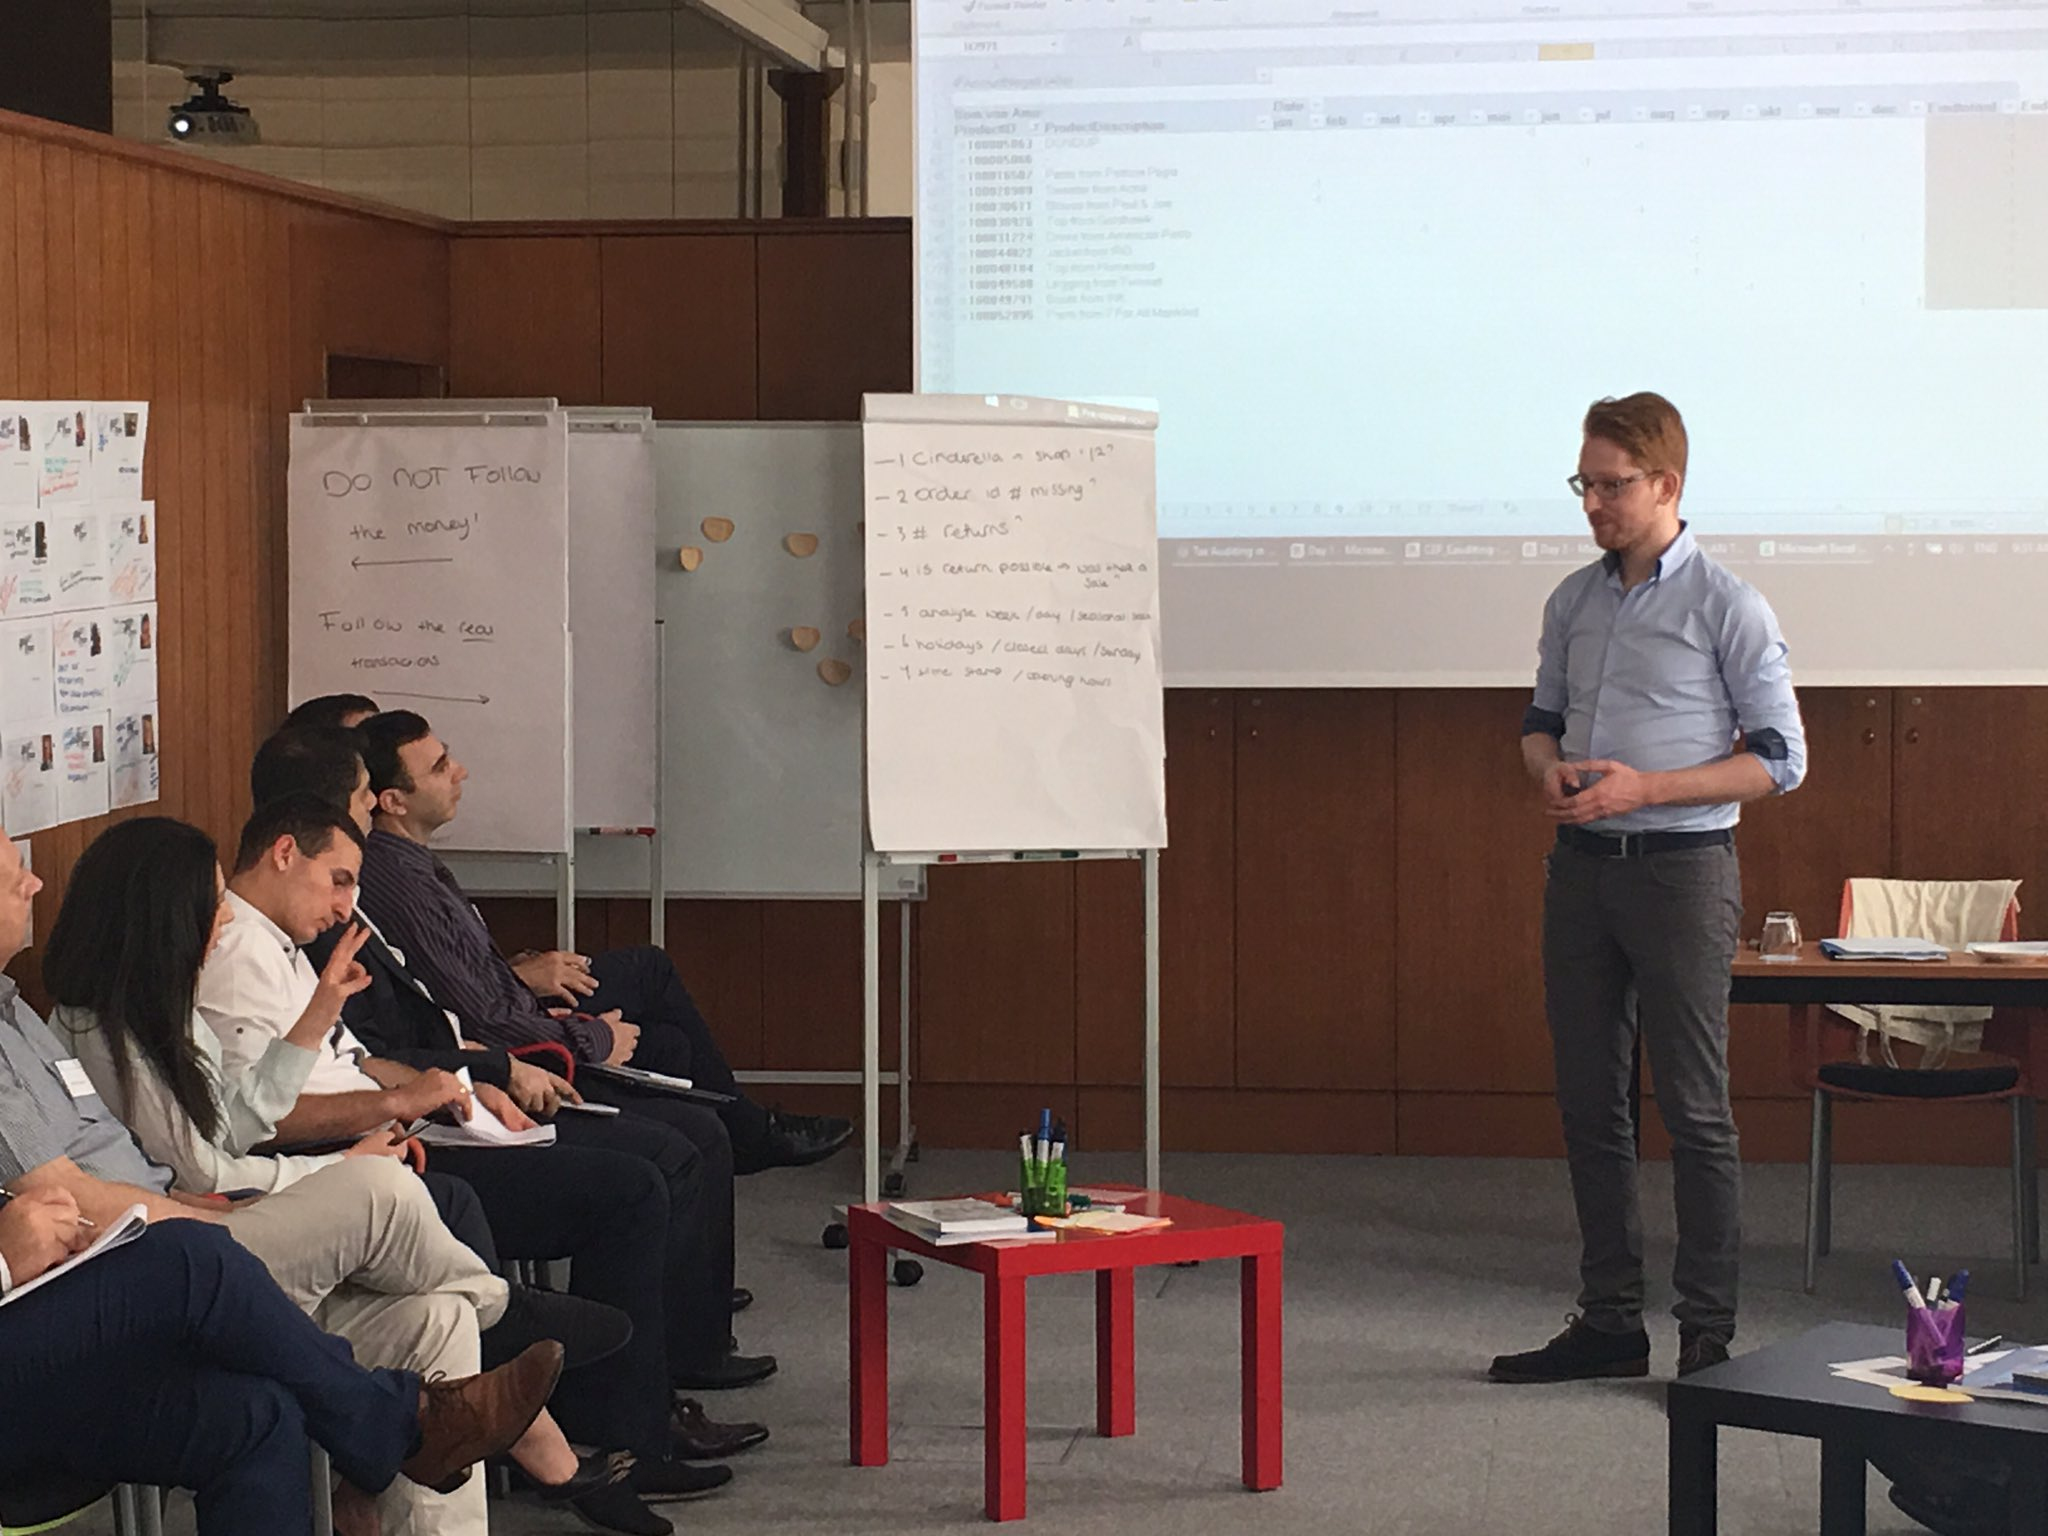 Day 2 of #e_commerce and #eAuditing, more data analysis & Excel  @Belastingdienst @CEF_Ljubljana https://t.co/mnTCQr3O4r